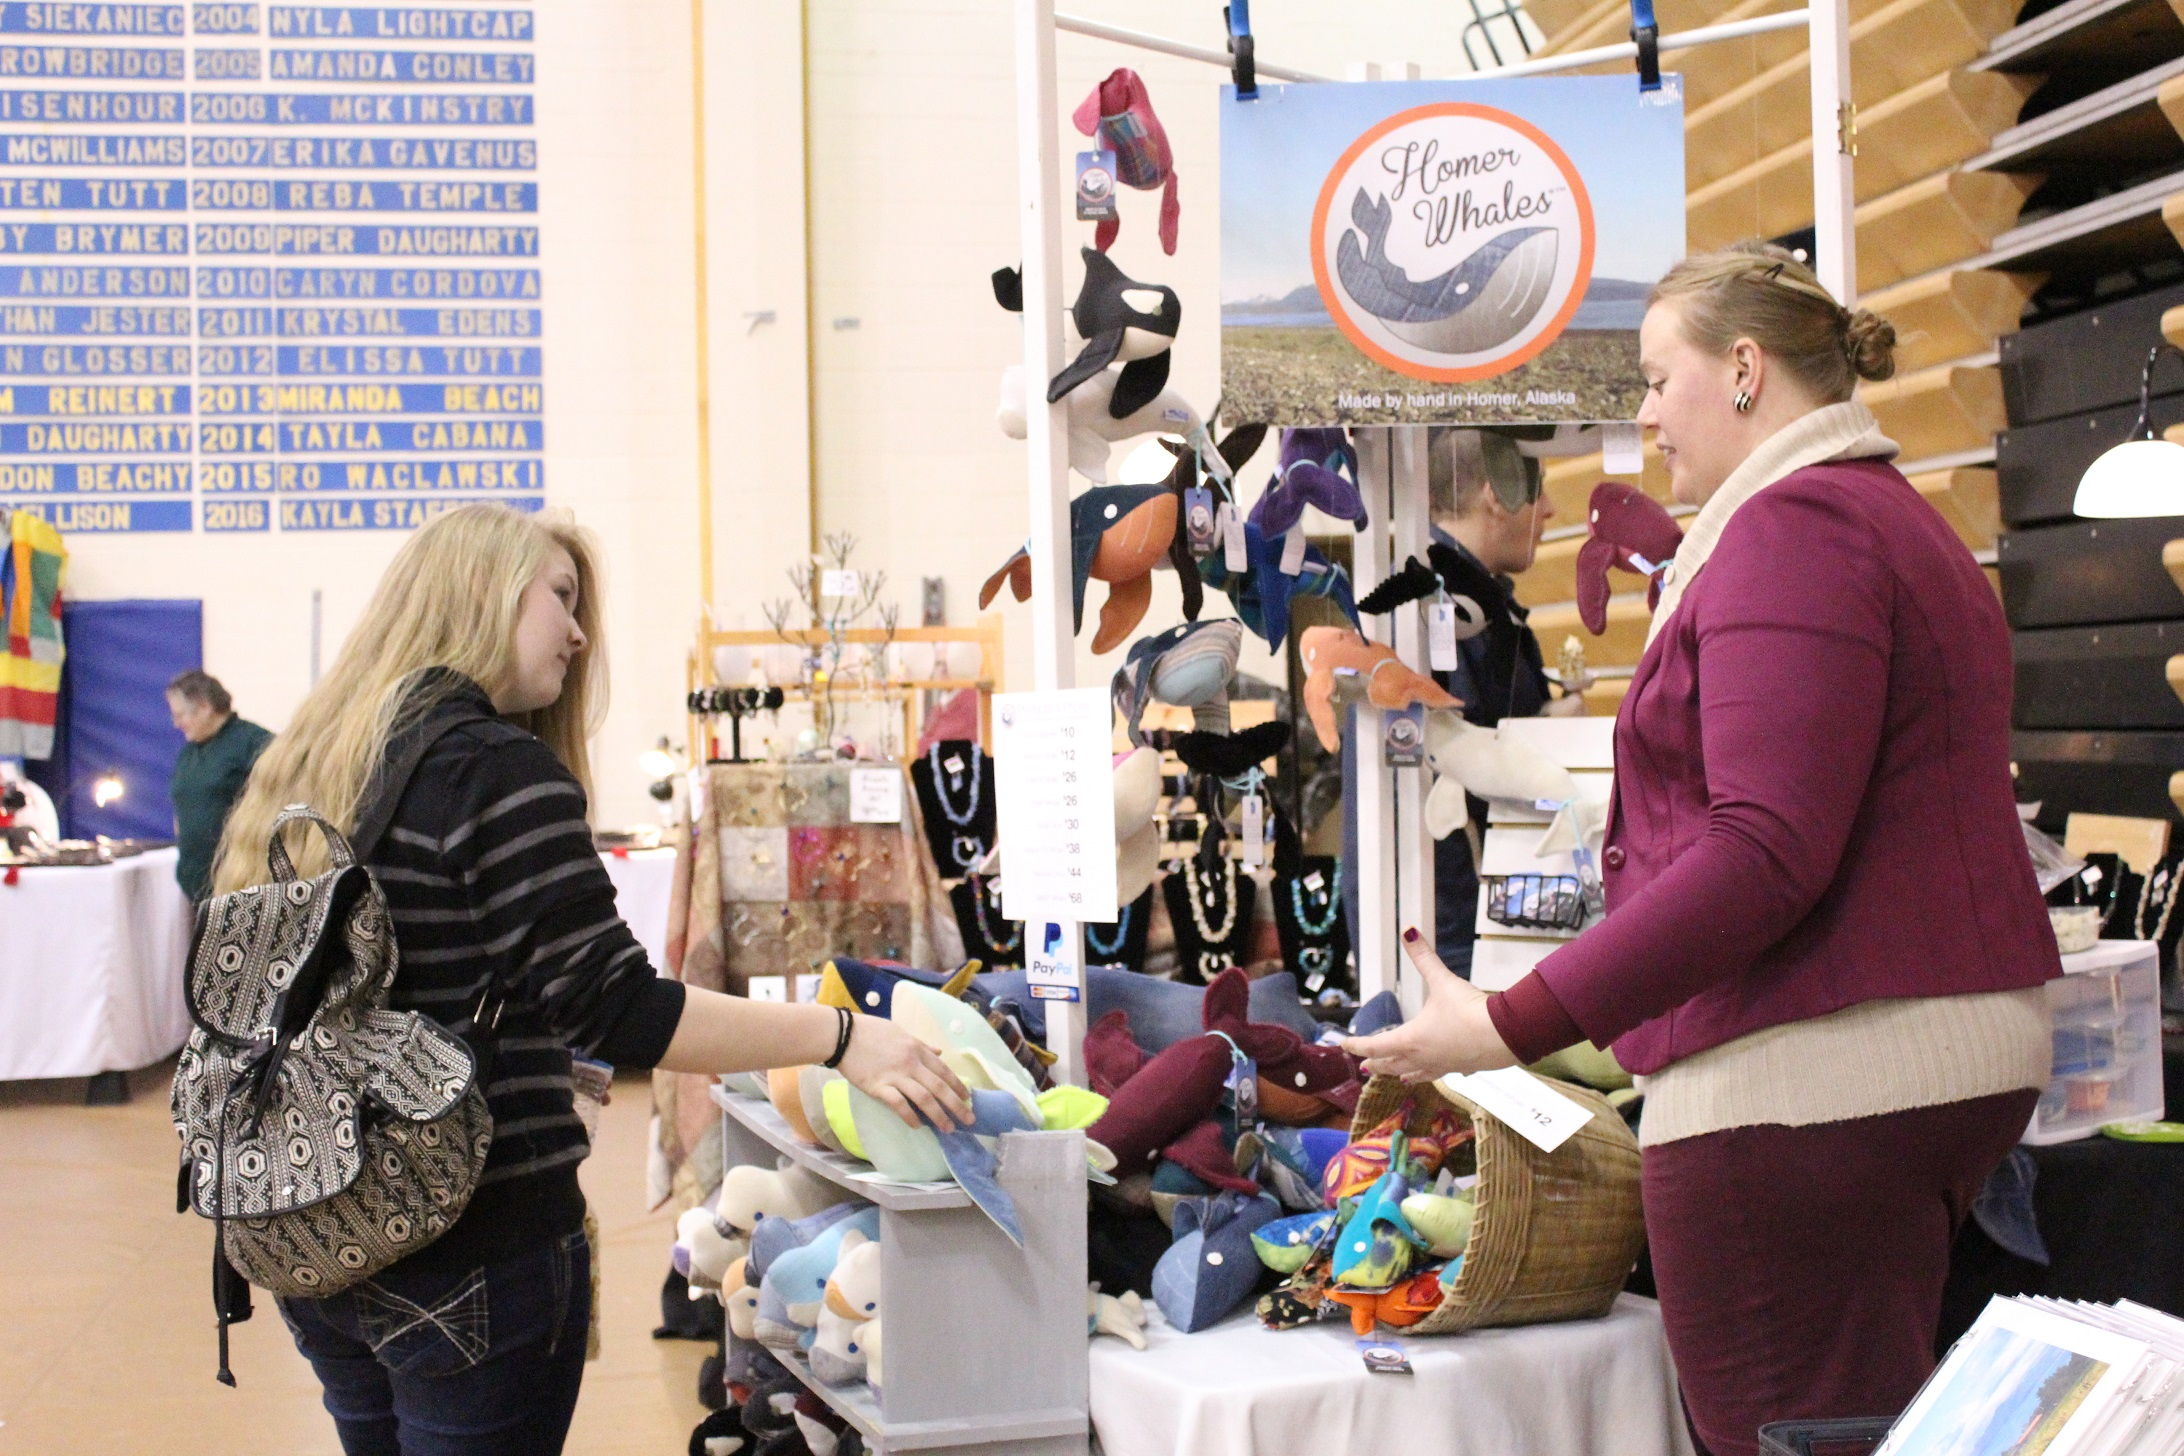 Abagail Kokai talks to a customer about her stuffed denim Homer Whales at the Nutcracker Faire on Saturday, Dec. 3.-Photo by Anna Frost, Homer News